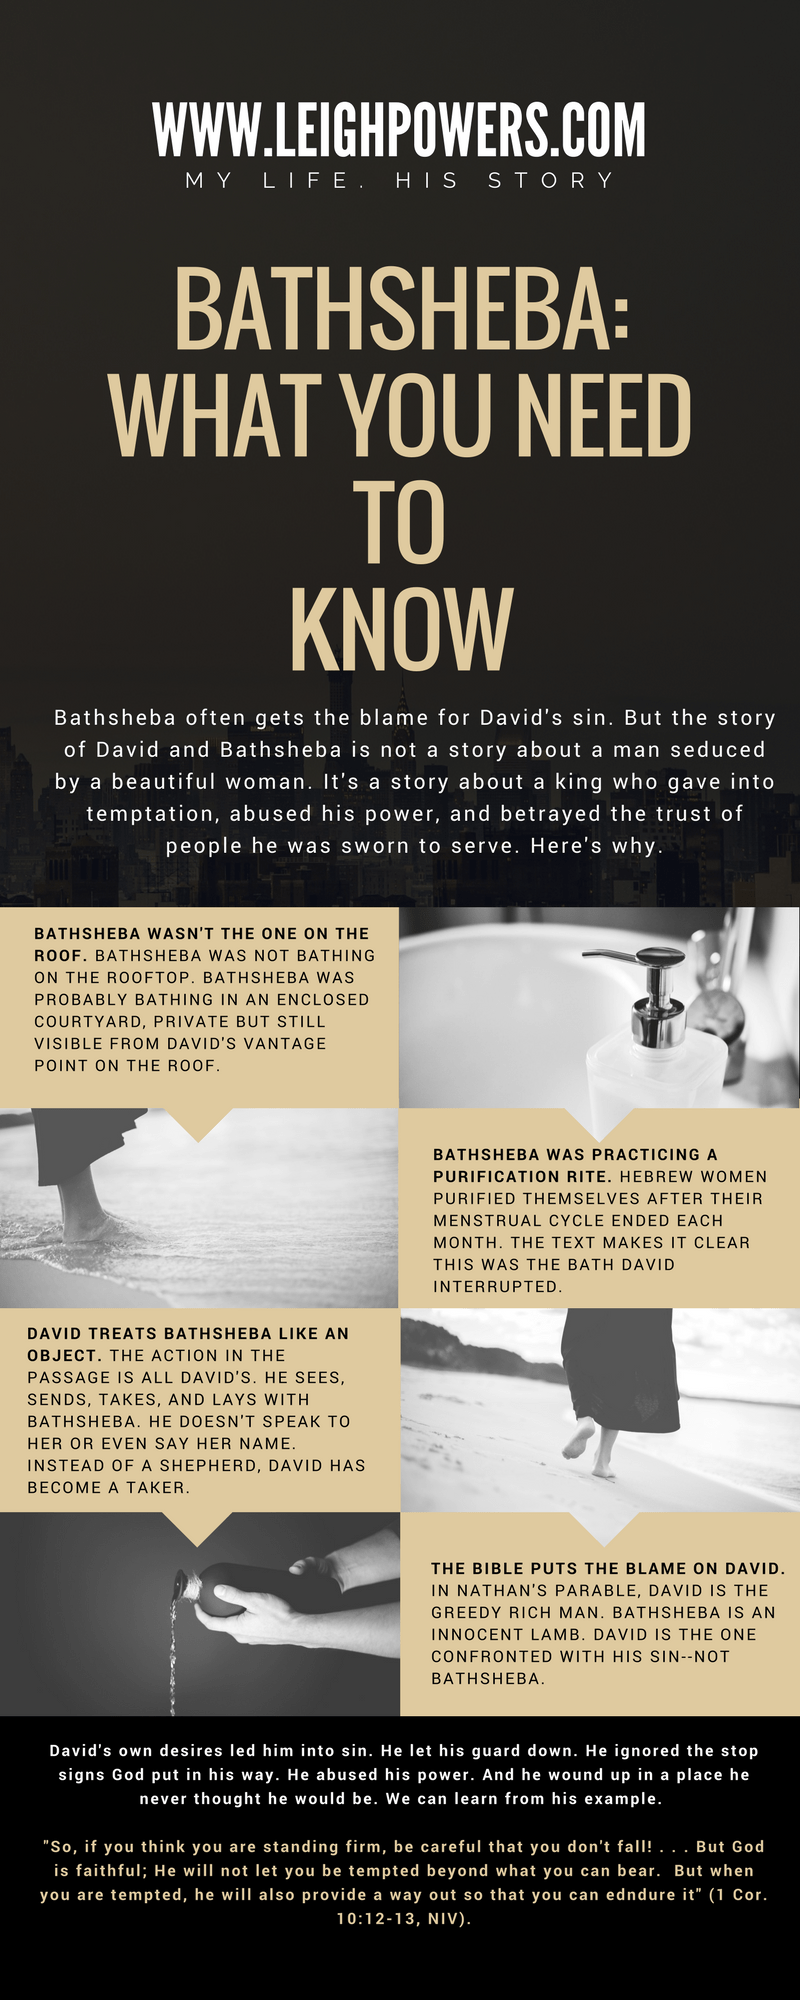 The story of David and Bathsheba is about a king who abused his power--not a woman who seduced him. 5 things you need to know about Bathsheba. #biblestudy